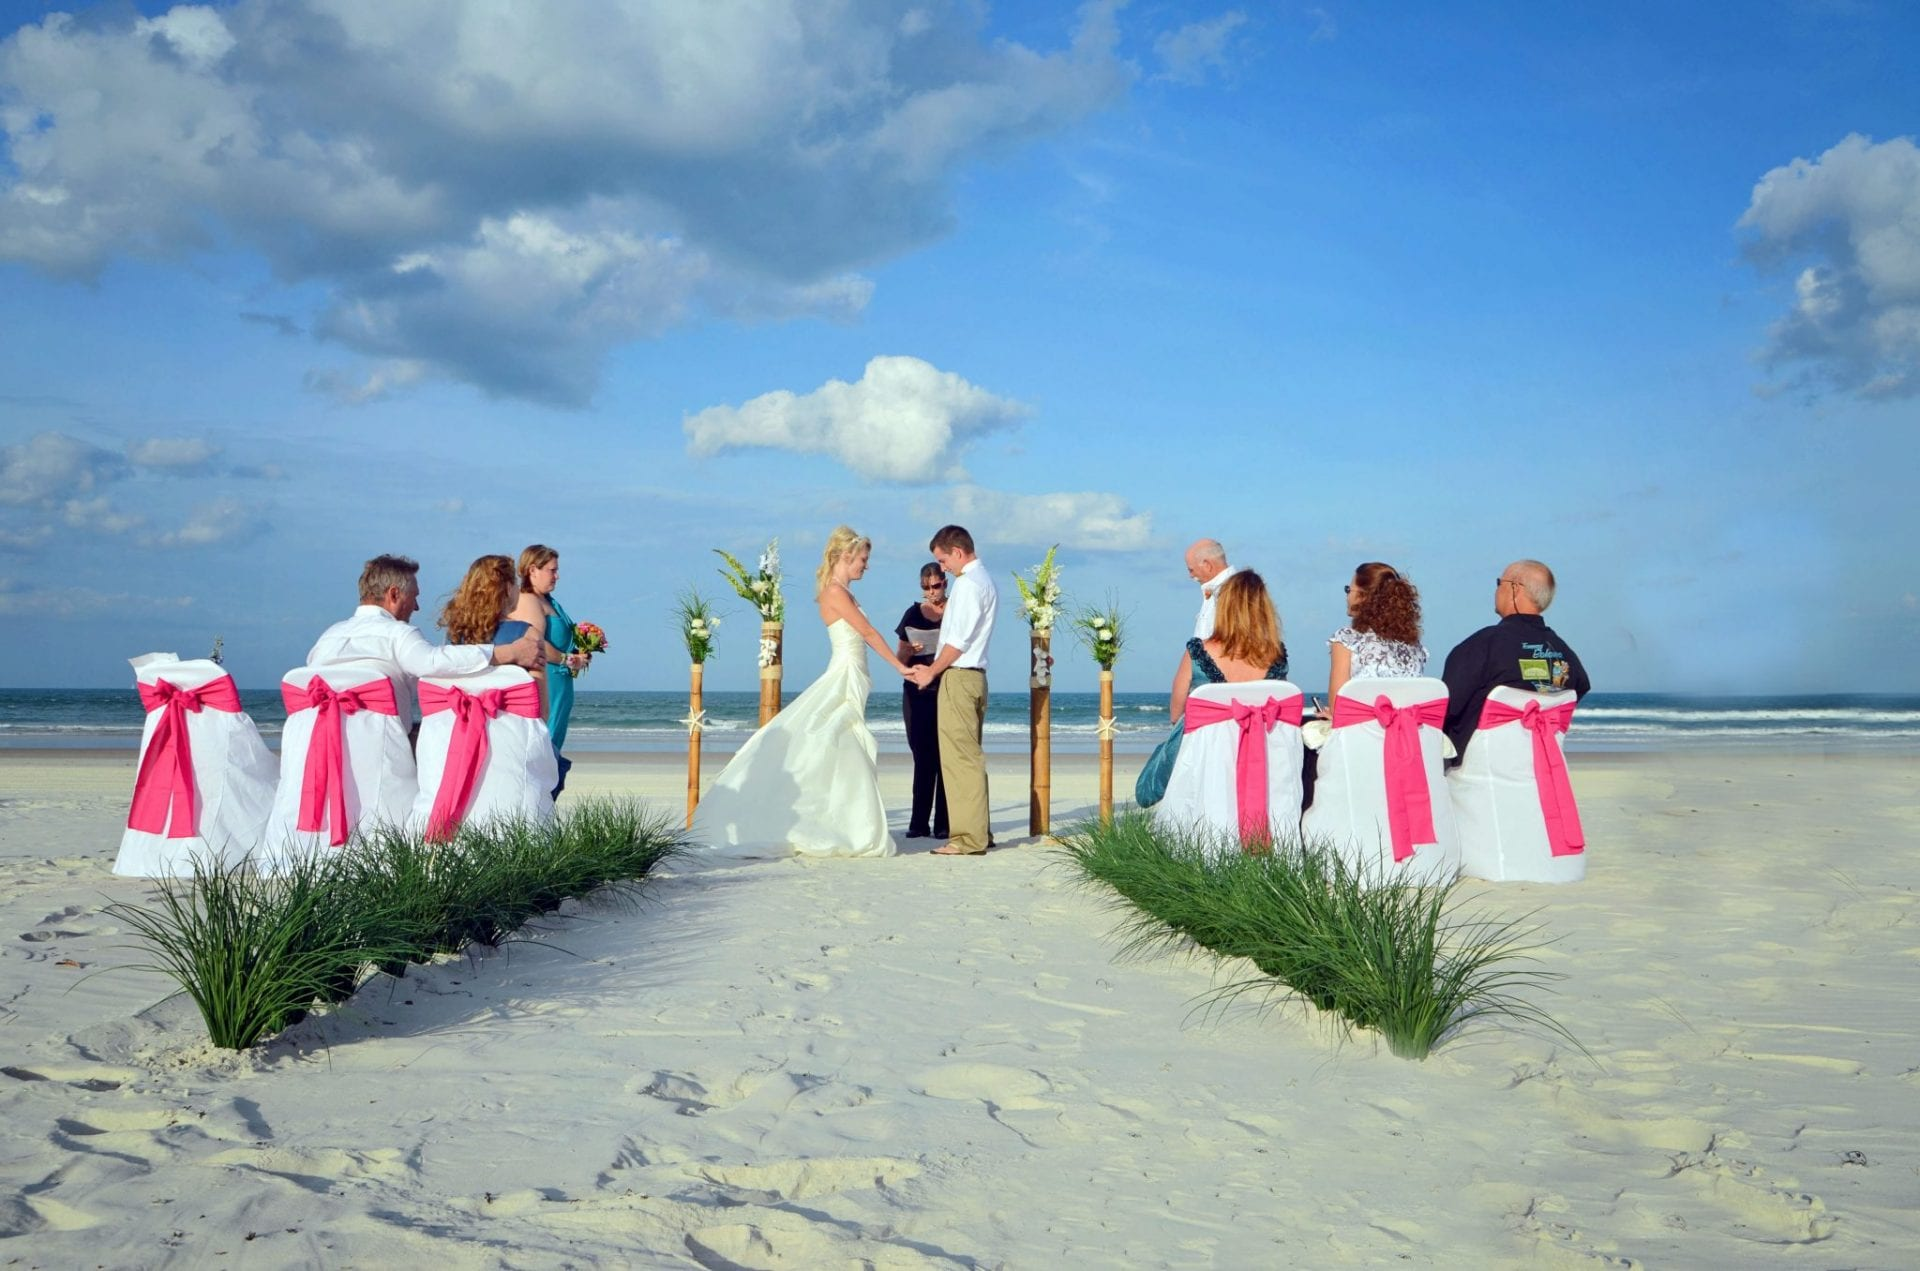 couple holding hands at Florida beach wedding with guests